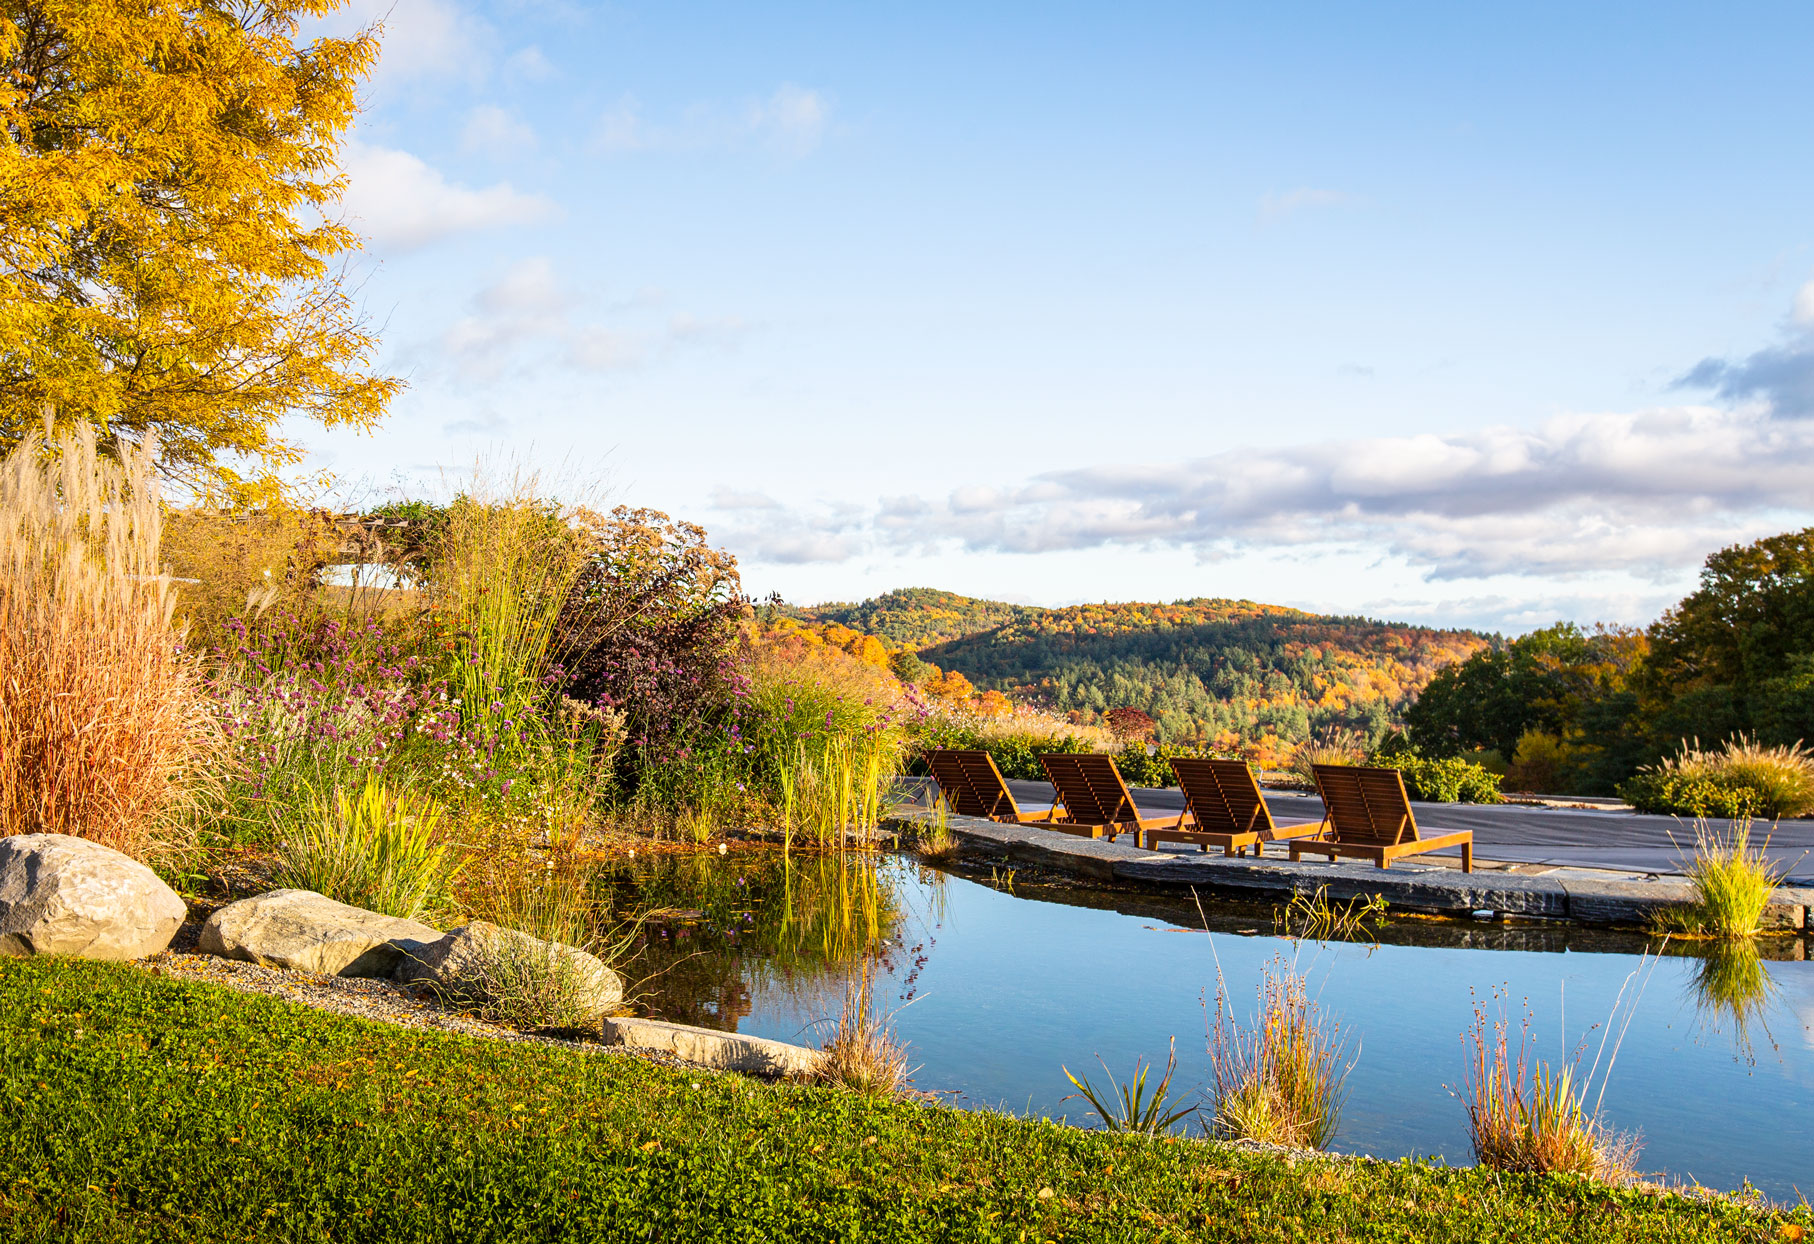 natural pond landscaped with autumnal flowers and foliage overlooking scenic Vermont area